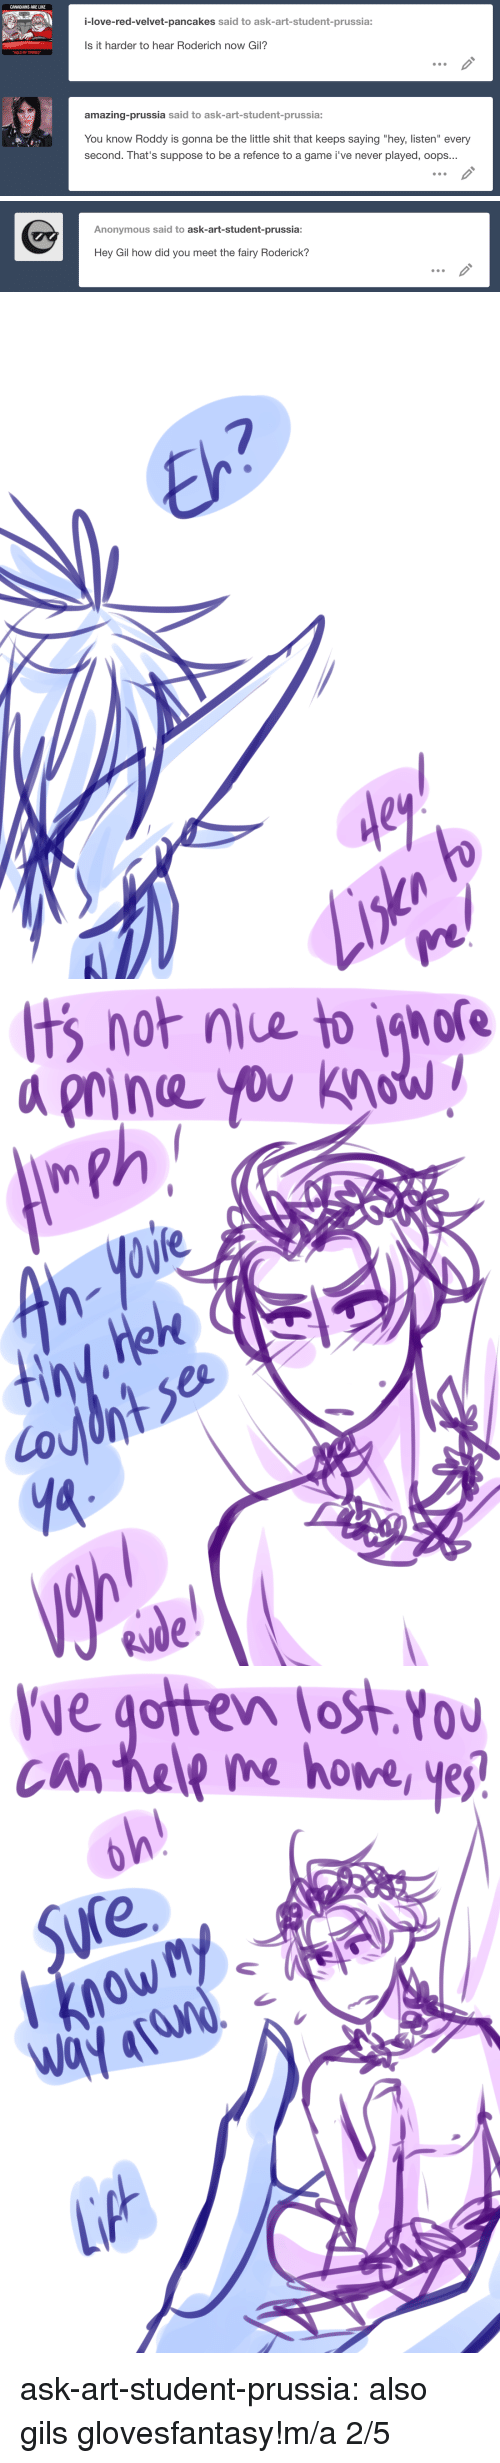 "Hey Listen: CANADIANS ARE LIKE  i-love-red-velvet-pancakes said to ask-art-student-prussia:  Is it harder to hear Roderich now Gil?  amazing-prussia said to ask-art-student-prussia:  You know Roddy is gonna be the little shit that keeps saying ""hey, listen"" every  second. That's suppose to be a refence to a game i've never played, oops...   Anonymous said to ask-art-student-prussia:  Hey Gil how did you meet the fairy Roderick?   7  dey   t  gore  not niue to  a rine you khaw  0W   ve gotten lost You  0U  cah tale me hove yej  Sure  owM ask-art-student-prussia:  also gils glovesfantasy!m/a 2/5"